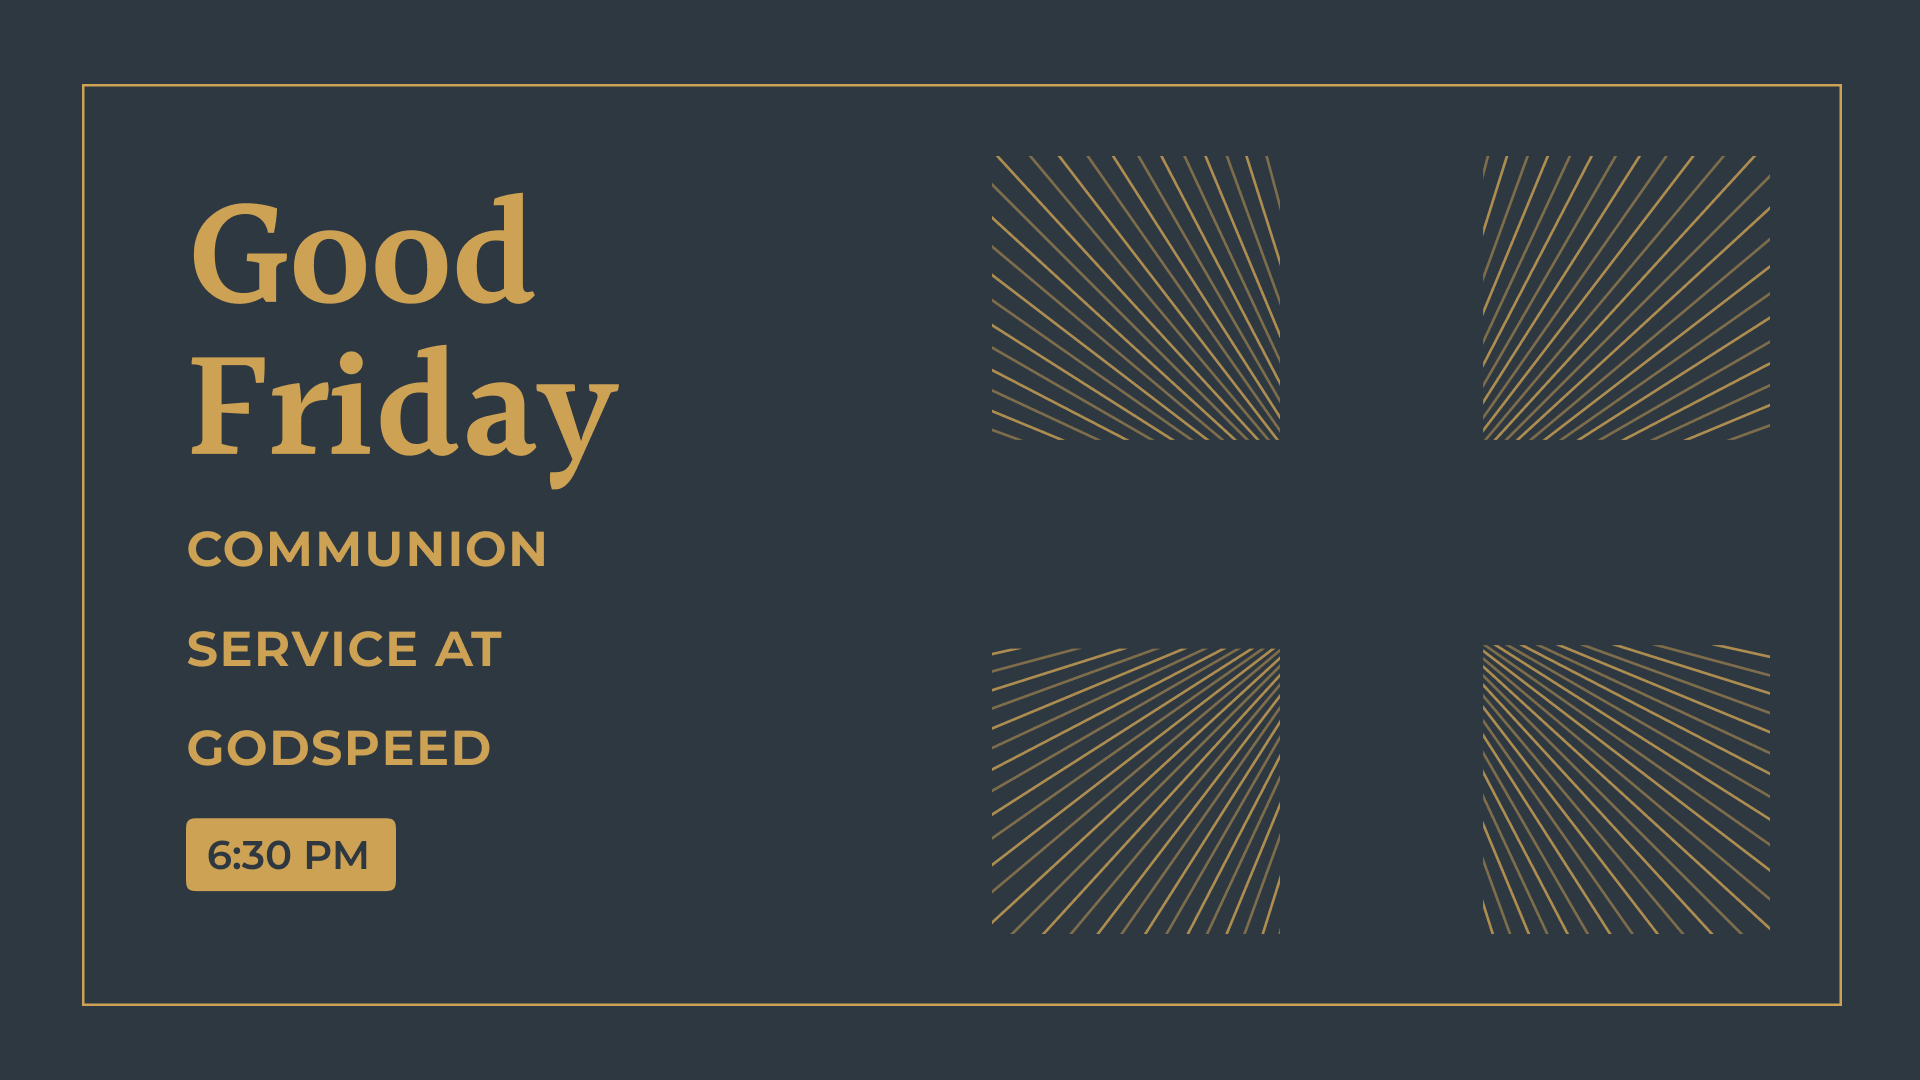 Good Friday FINAL 2 with date image